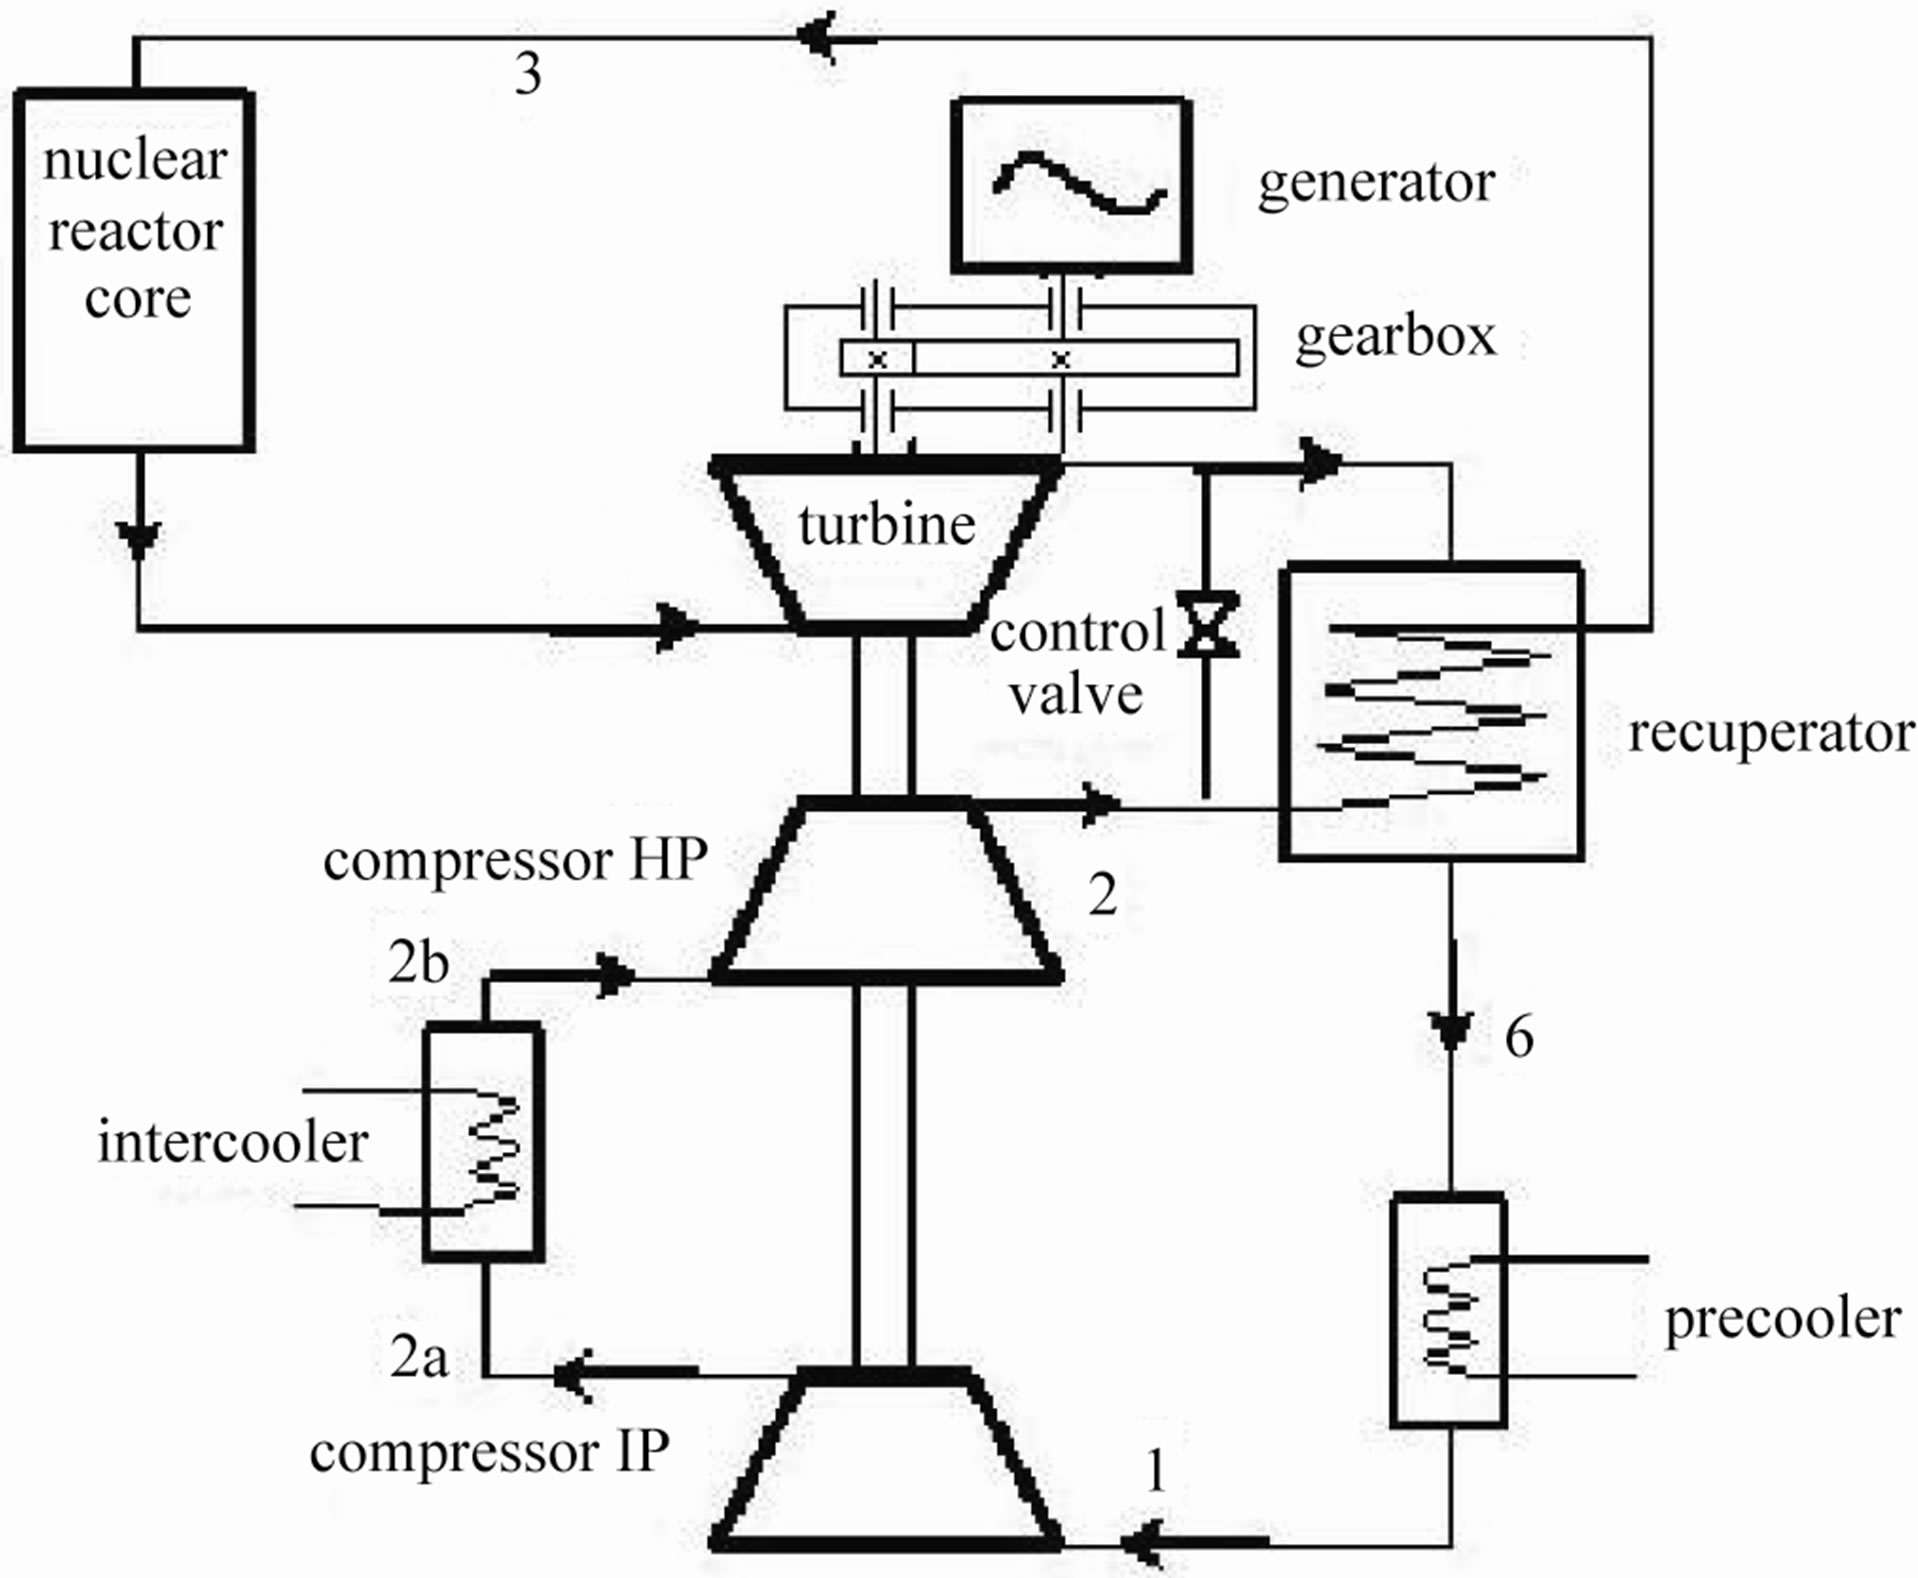 Gearbox Scheme In High Temperature Reactor Helium Gas